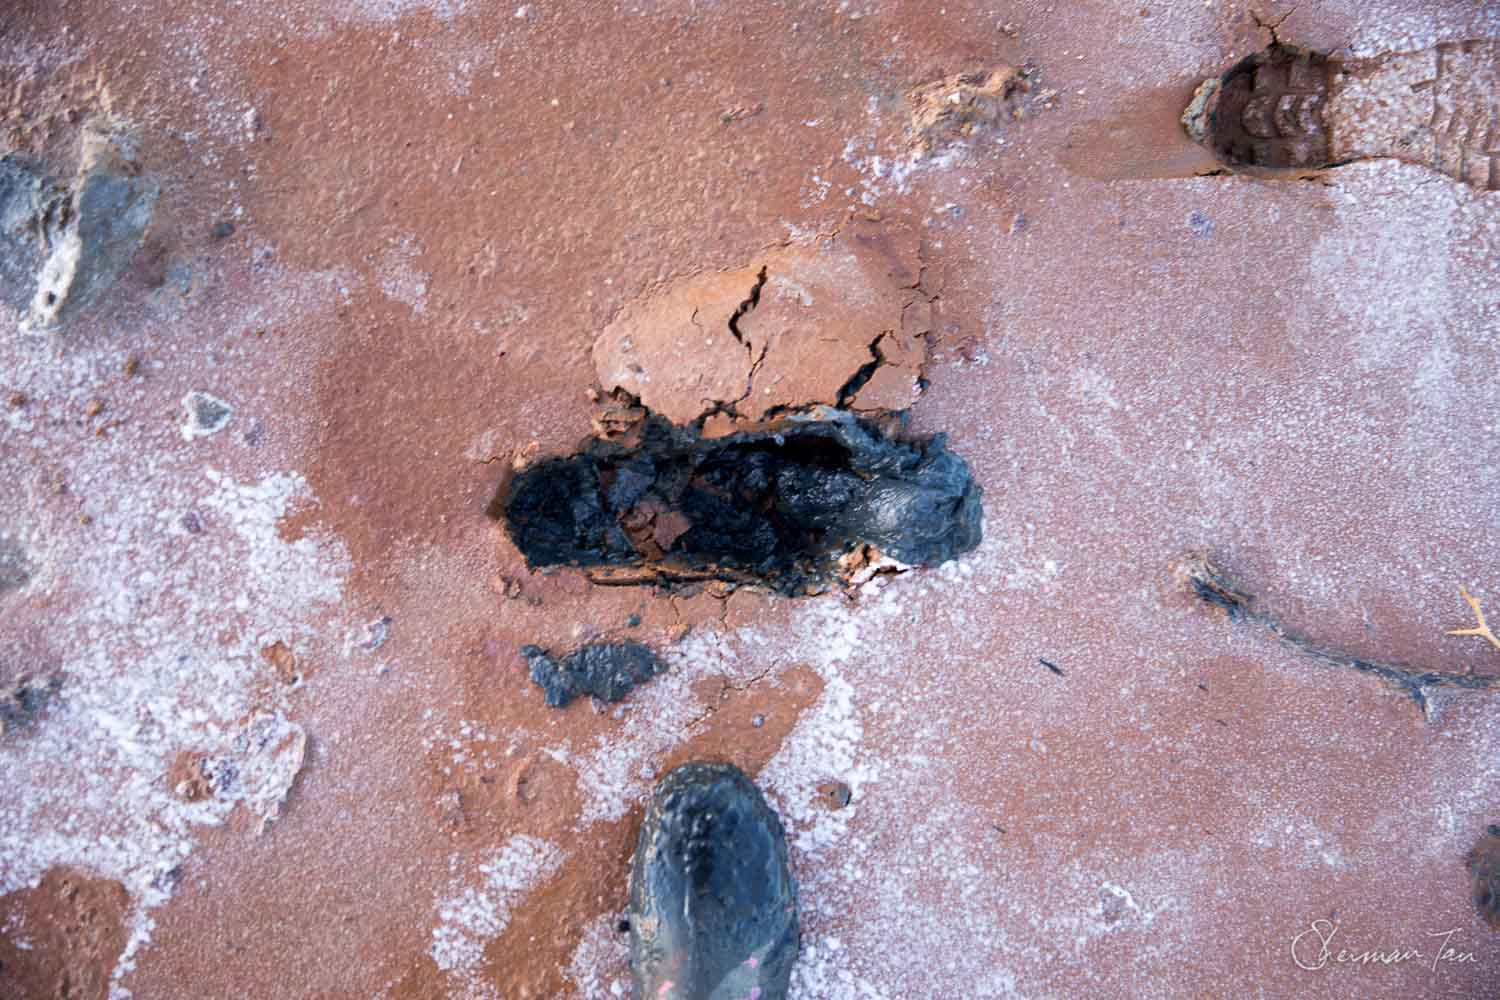 The ground can be pretty moist and soft and your feet could sink into black sulphide‐rich mud